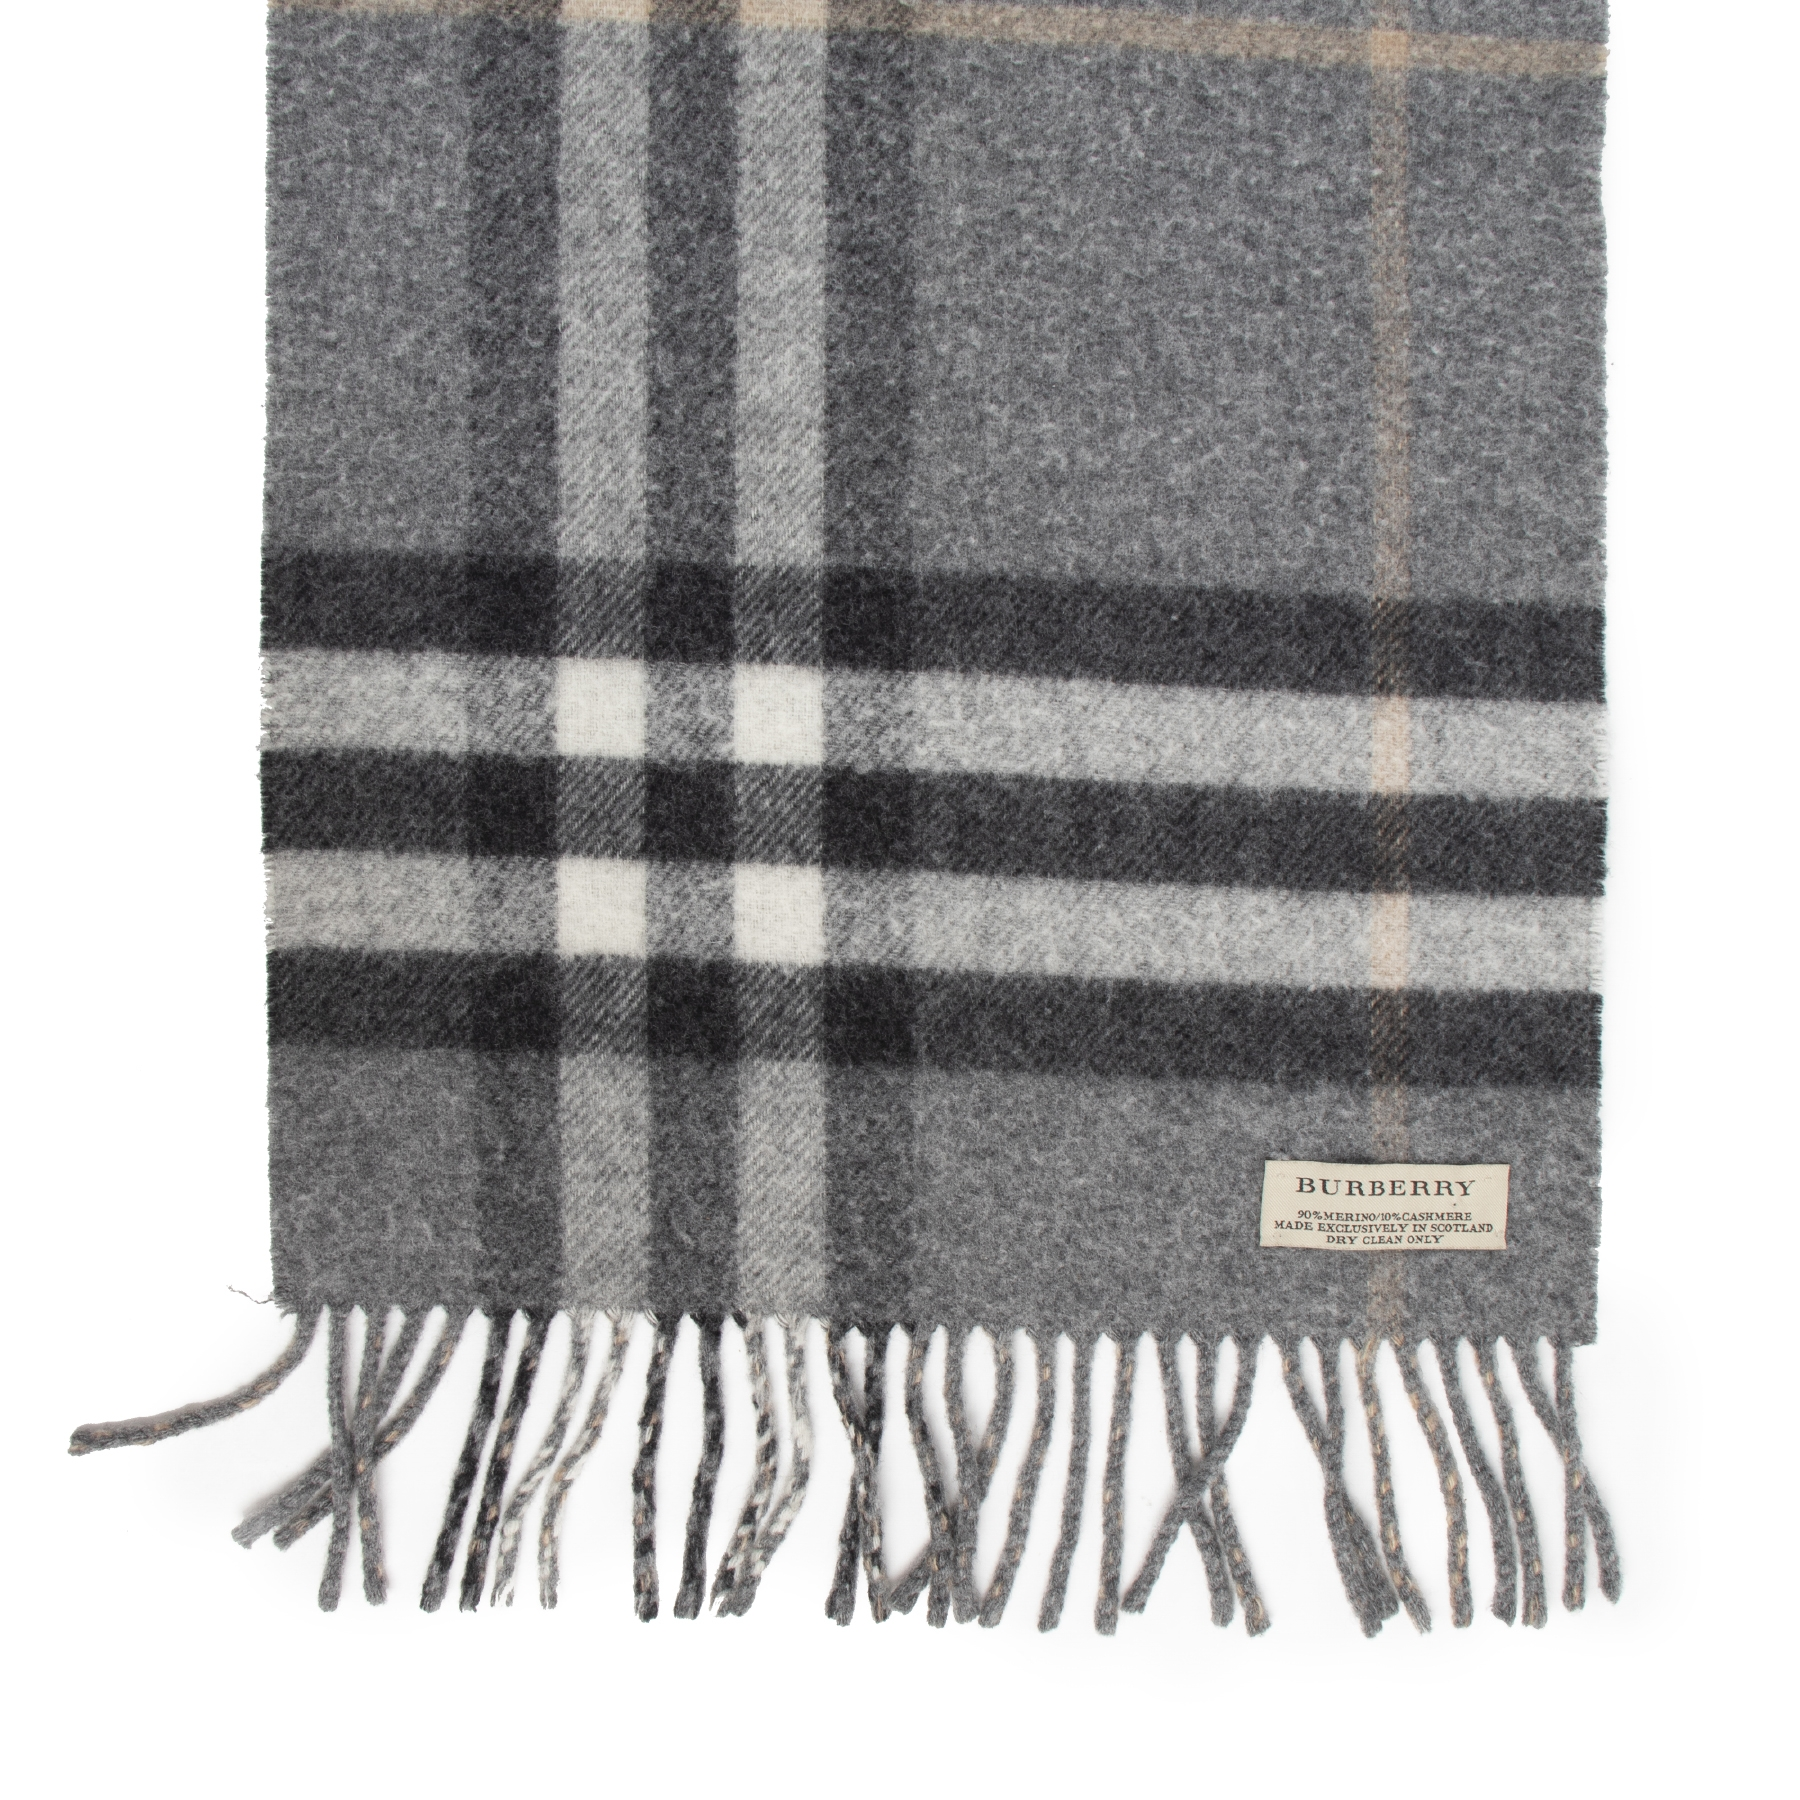 Authentic secondhand Burberry Grey Wool Check Scarf designer accessories fashion luxury vintage webshop safe secure online shopping